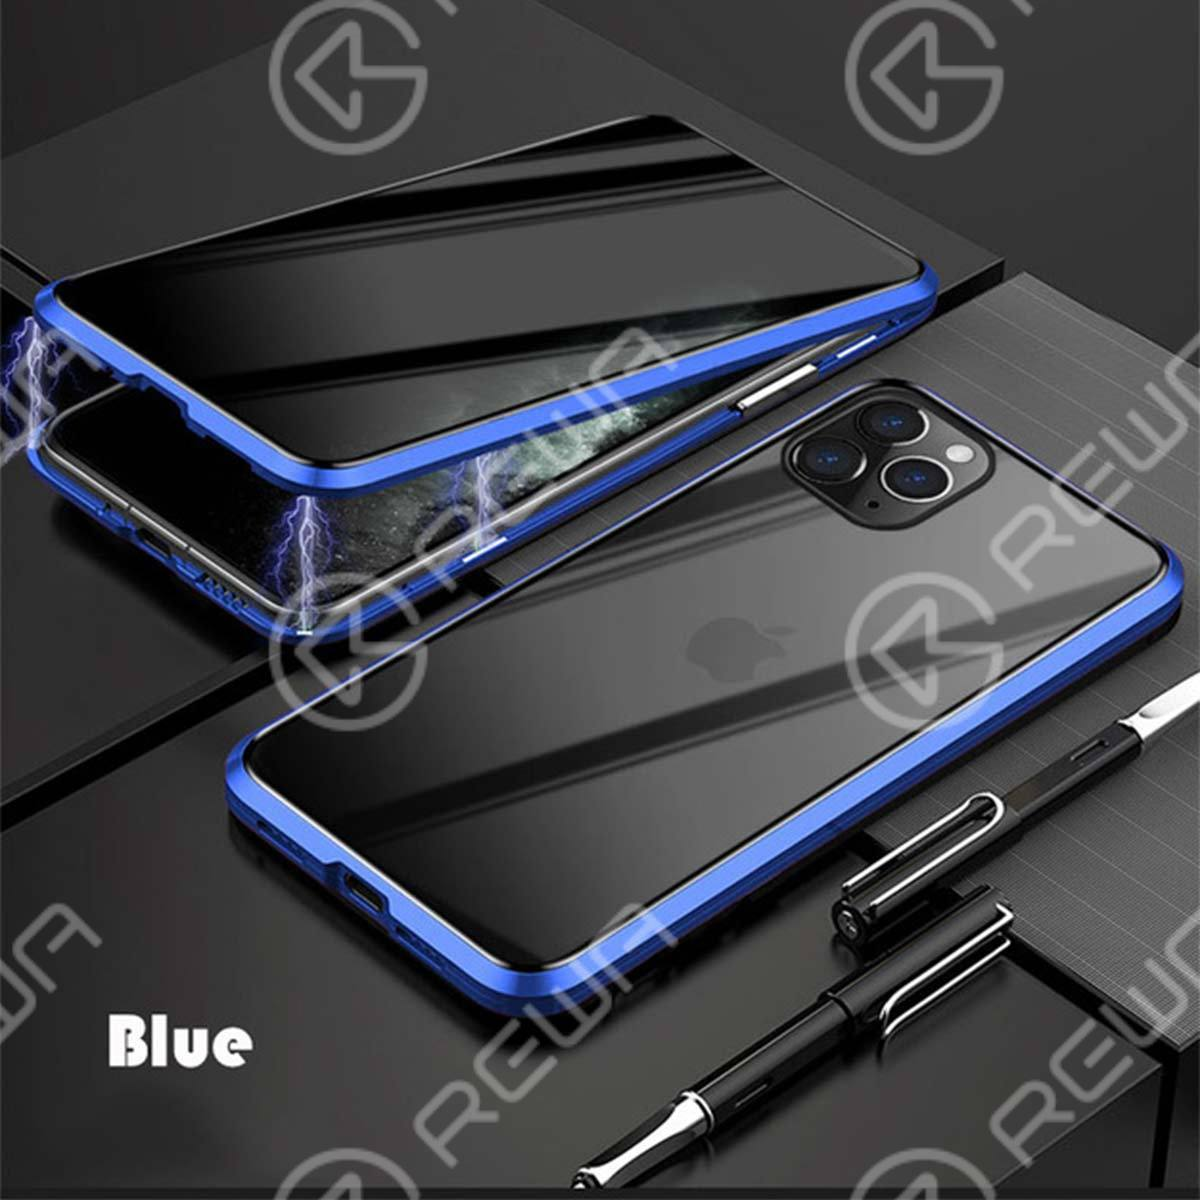 Magnet Double-Sided Privacy Glass Protective Phone Case For iPhone 7-12 Pro Max (Blue)